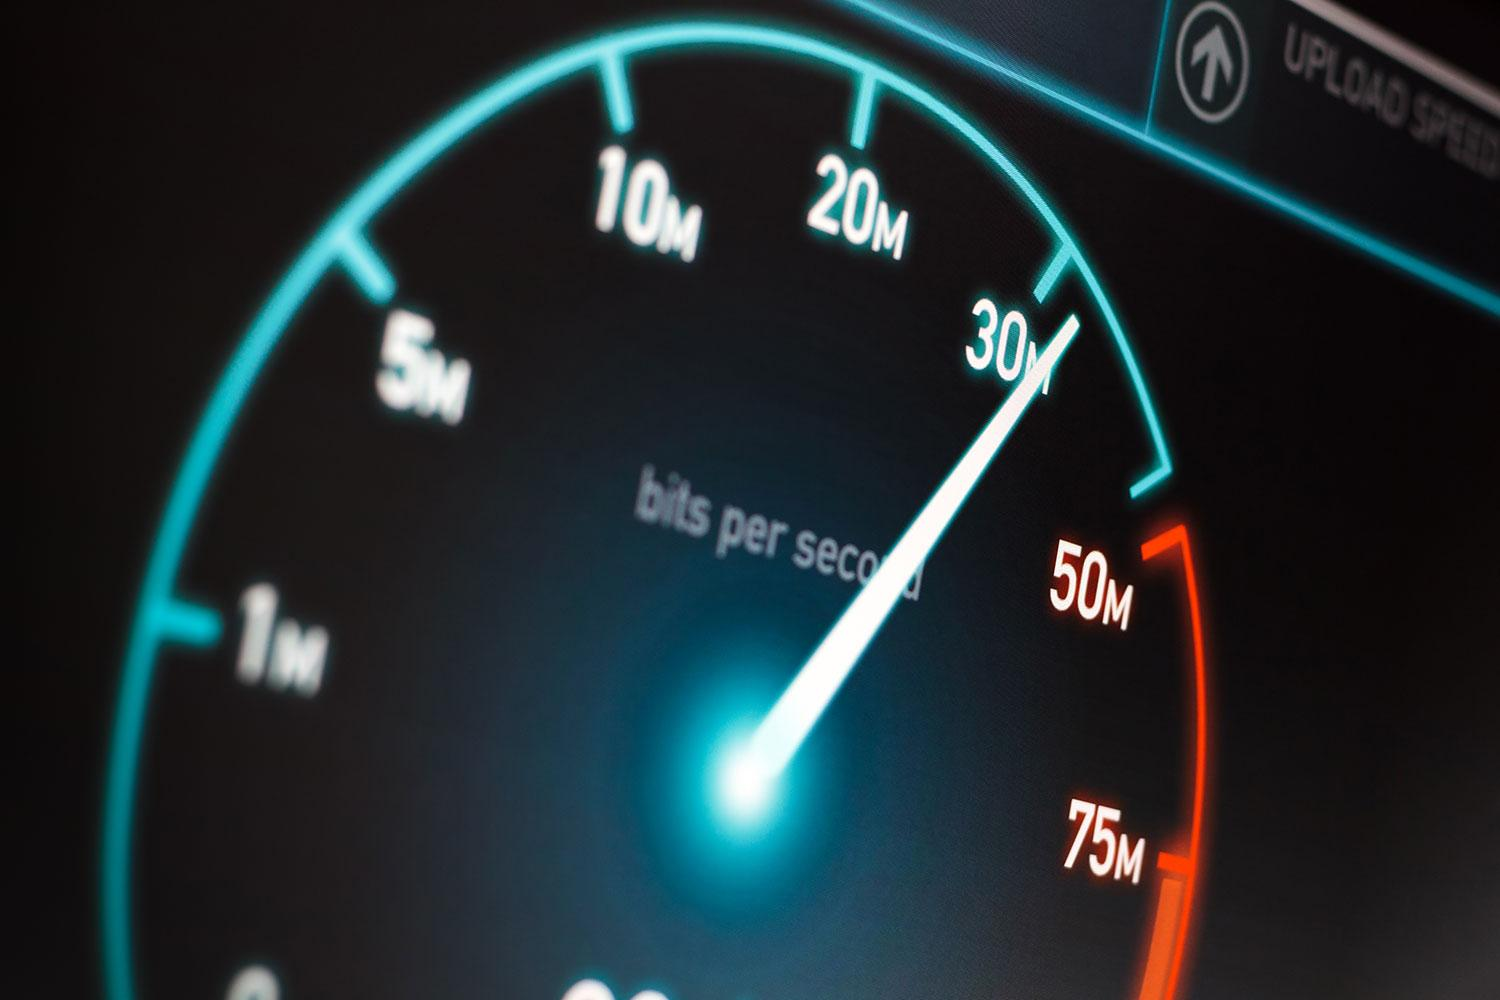 The UK government might be claiming that more than 90 per cent of the UK population is able to access superfast broadband speeds, but the truth is, most of the users cannot even access speed over 24 Mbps.